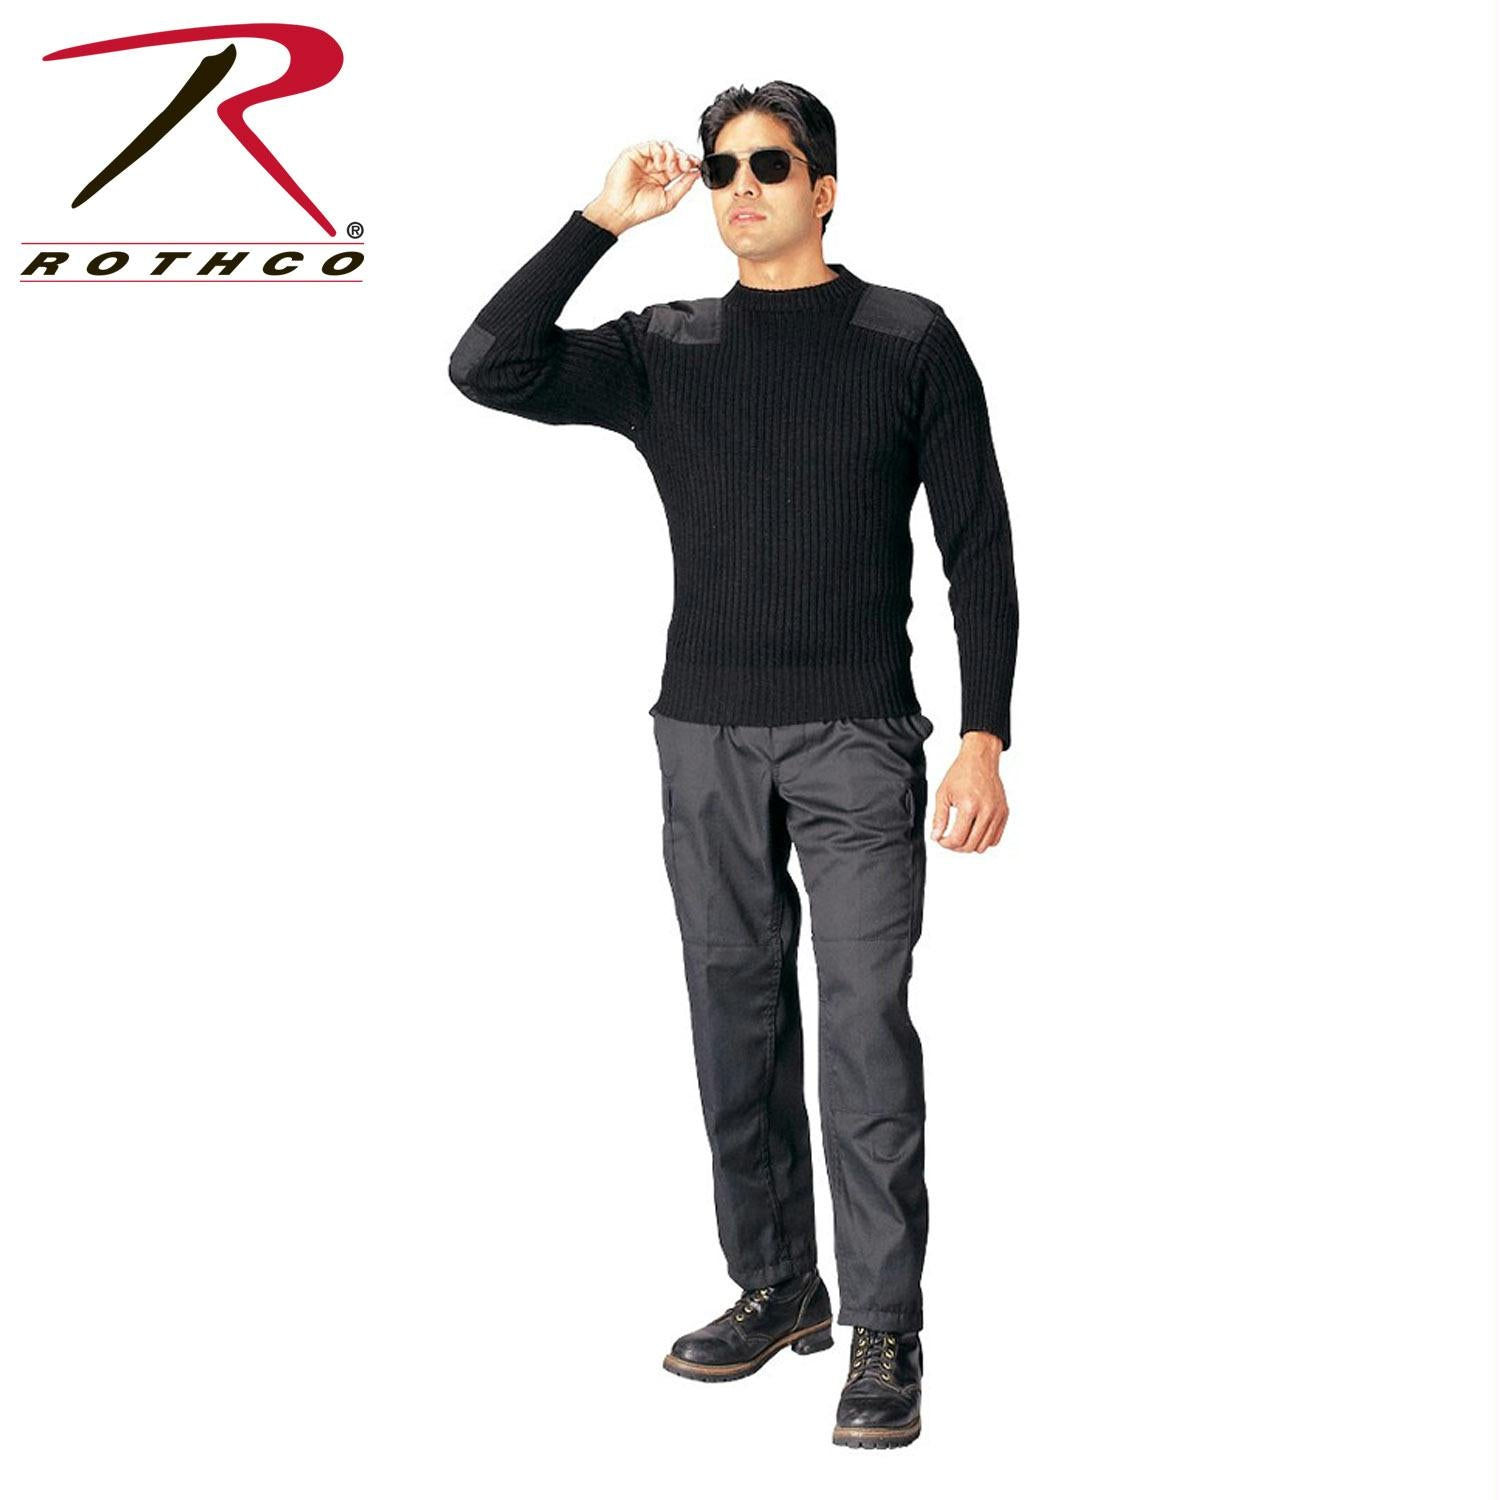 Rothco Government Type Wool Commando Sweater - 42 / Black